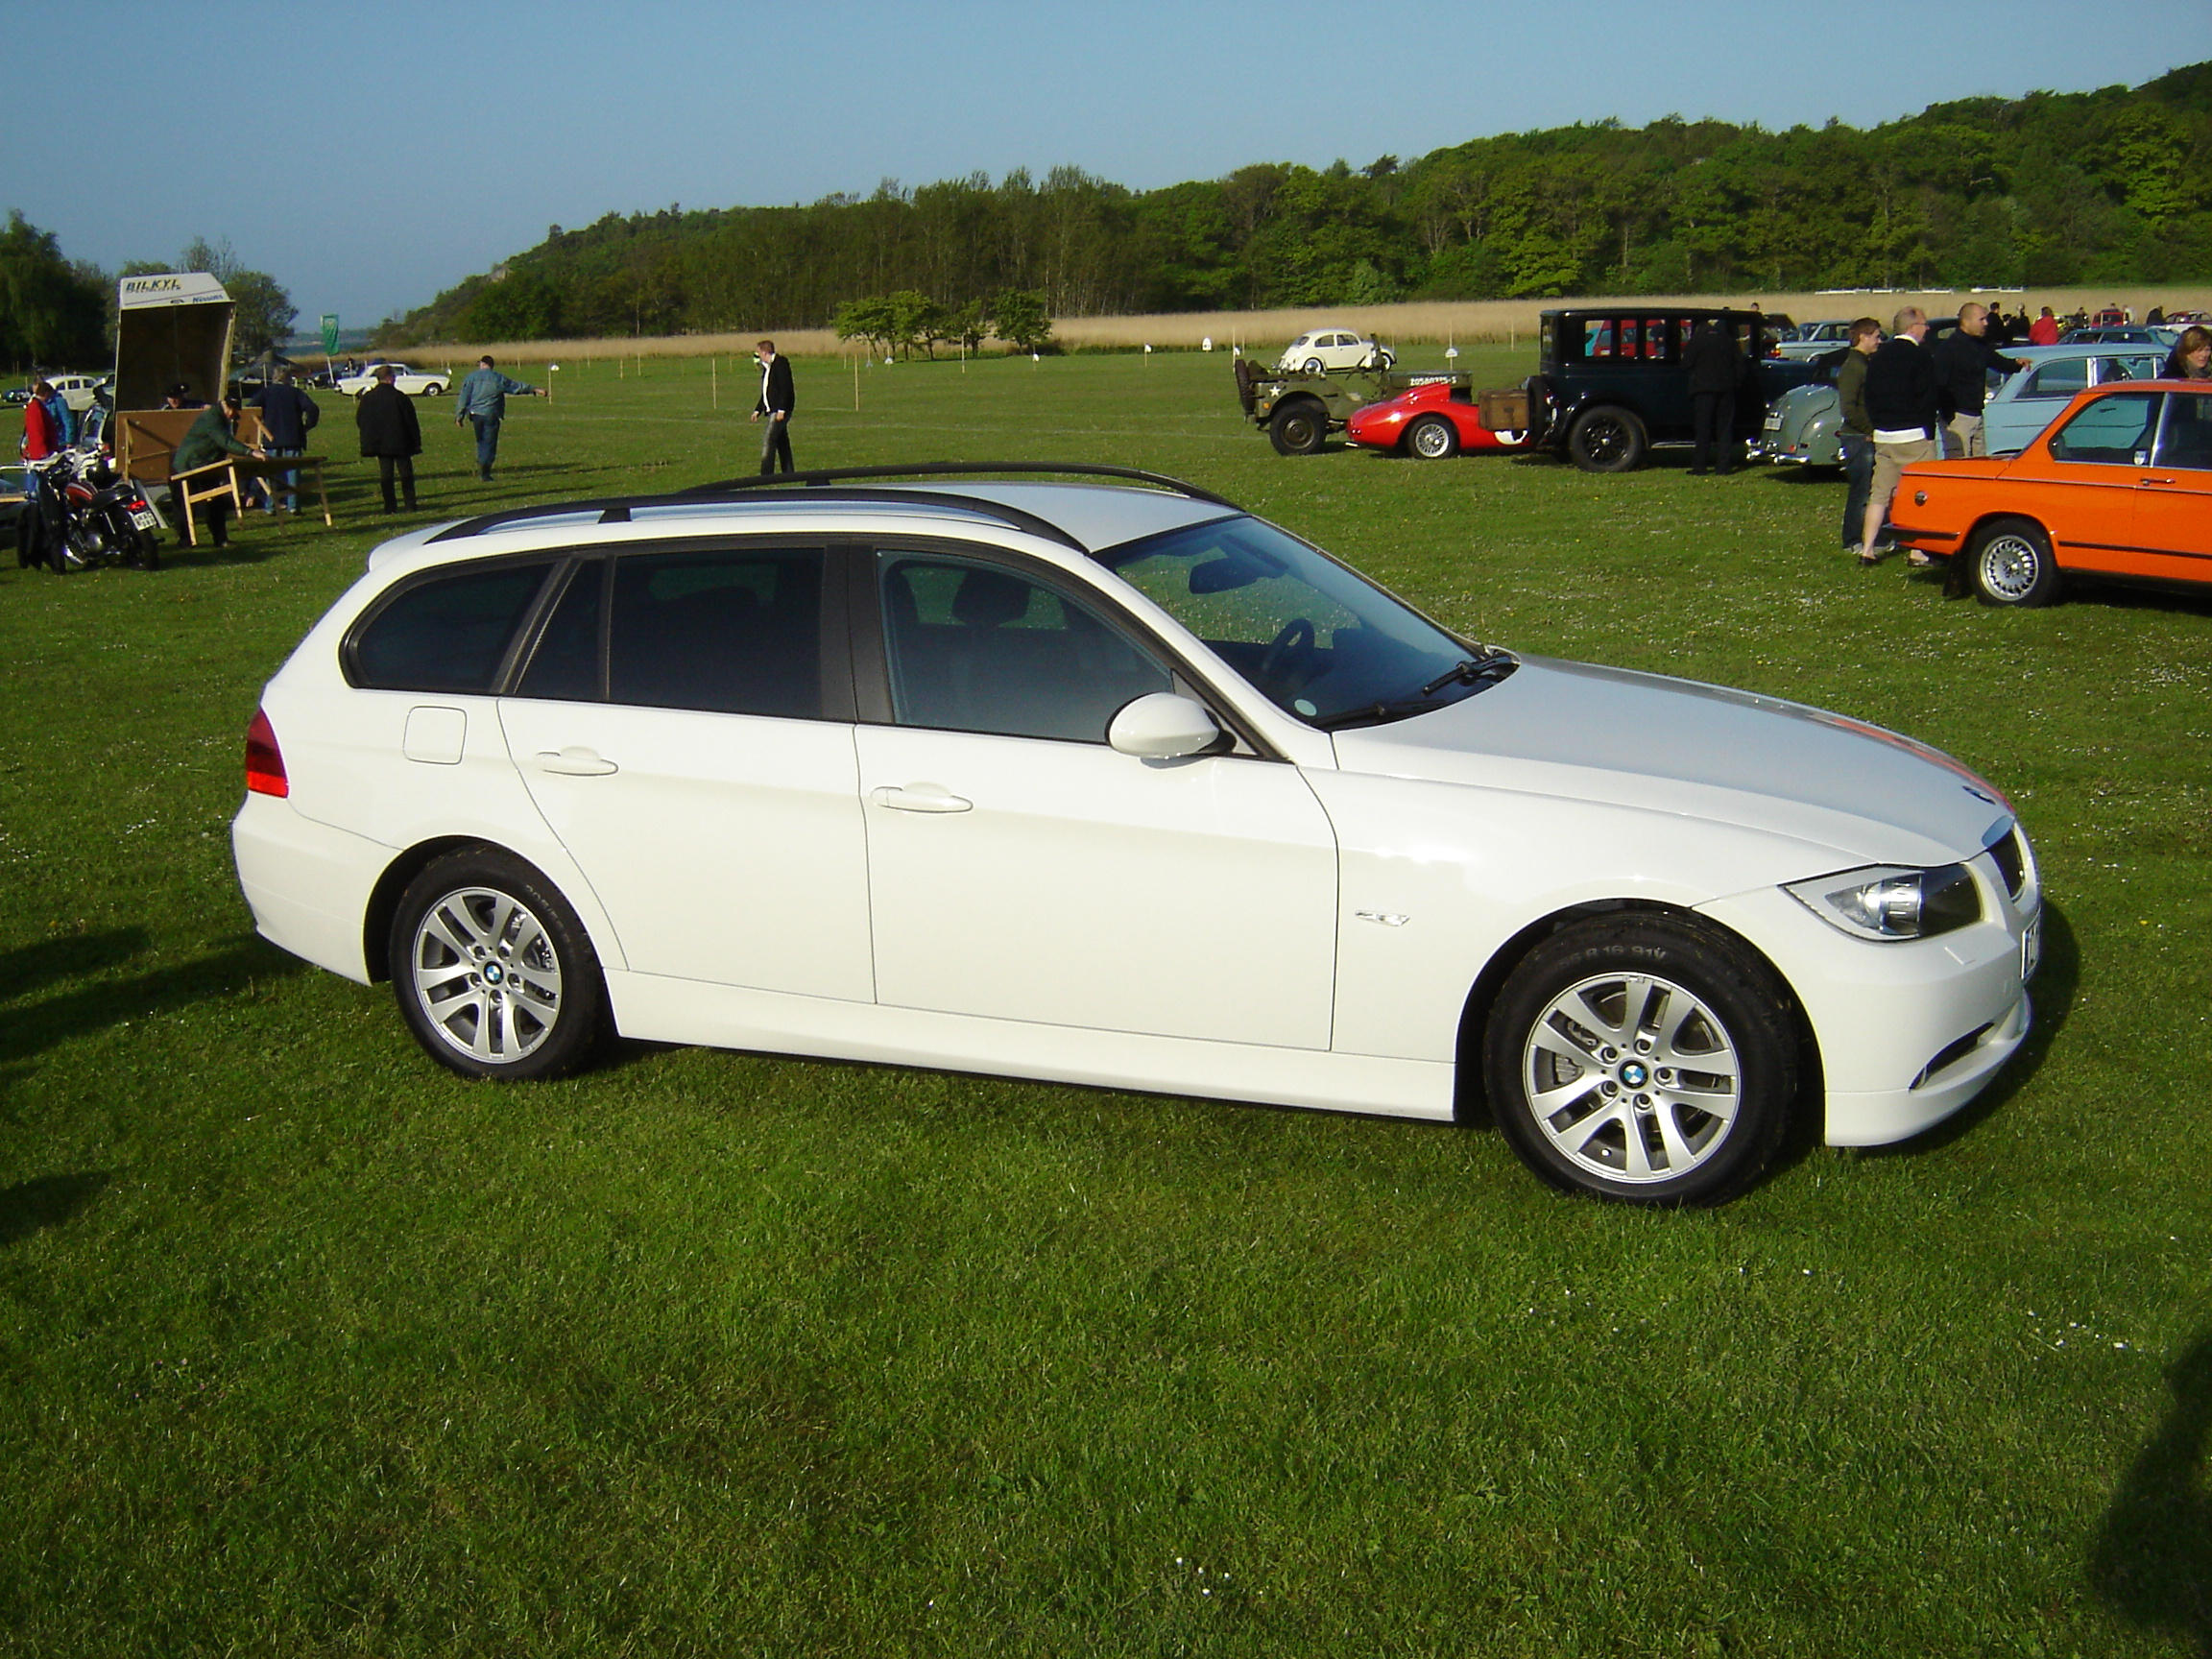 BMW 320i Touring | Flickr - Photo Sharing!